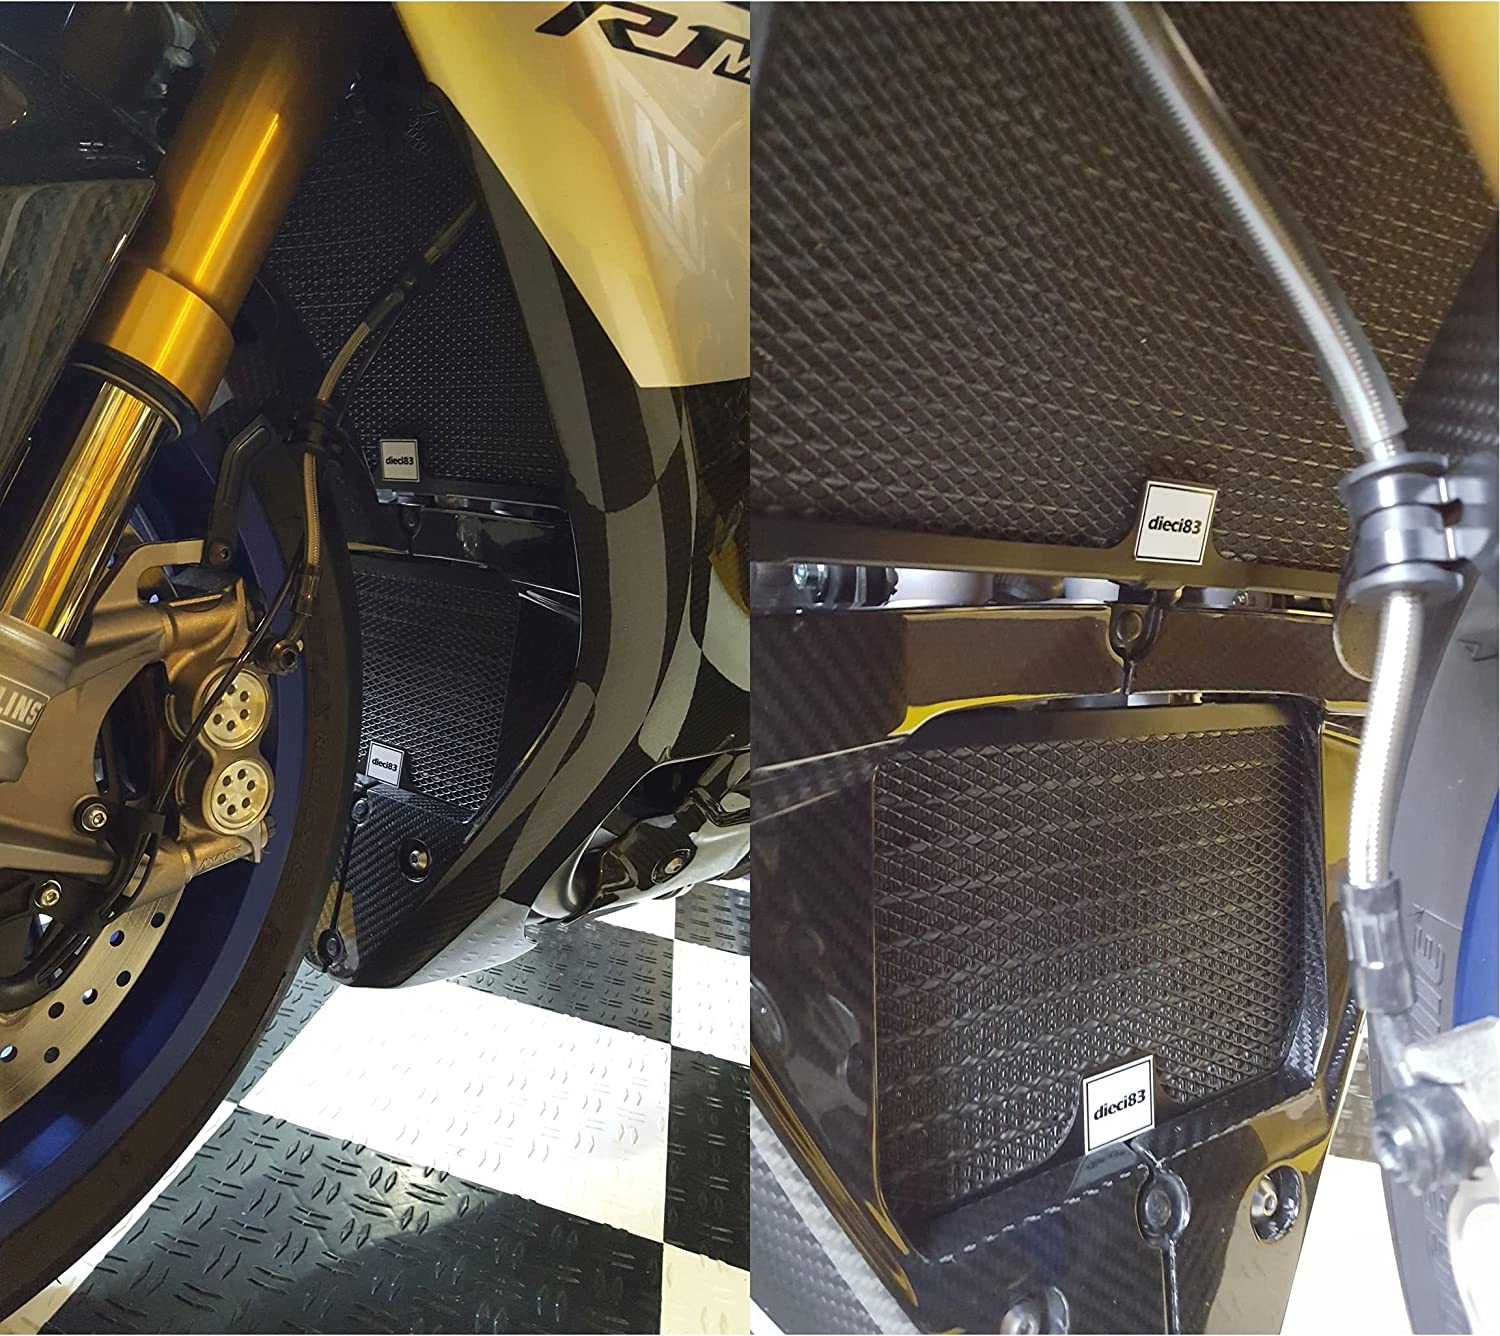 Dieci83 Aluminum Radiator and Oil Cooler Guard Cover Protector Grille for YZF R1 R1S R1M 2015-2018